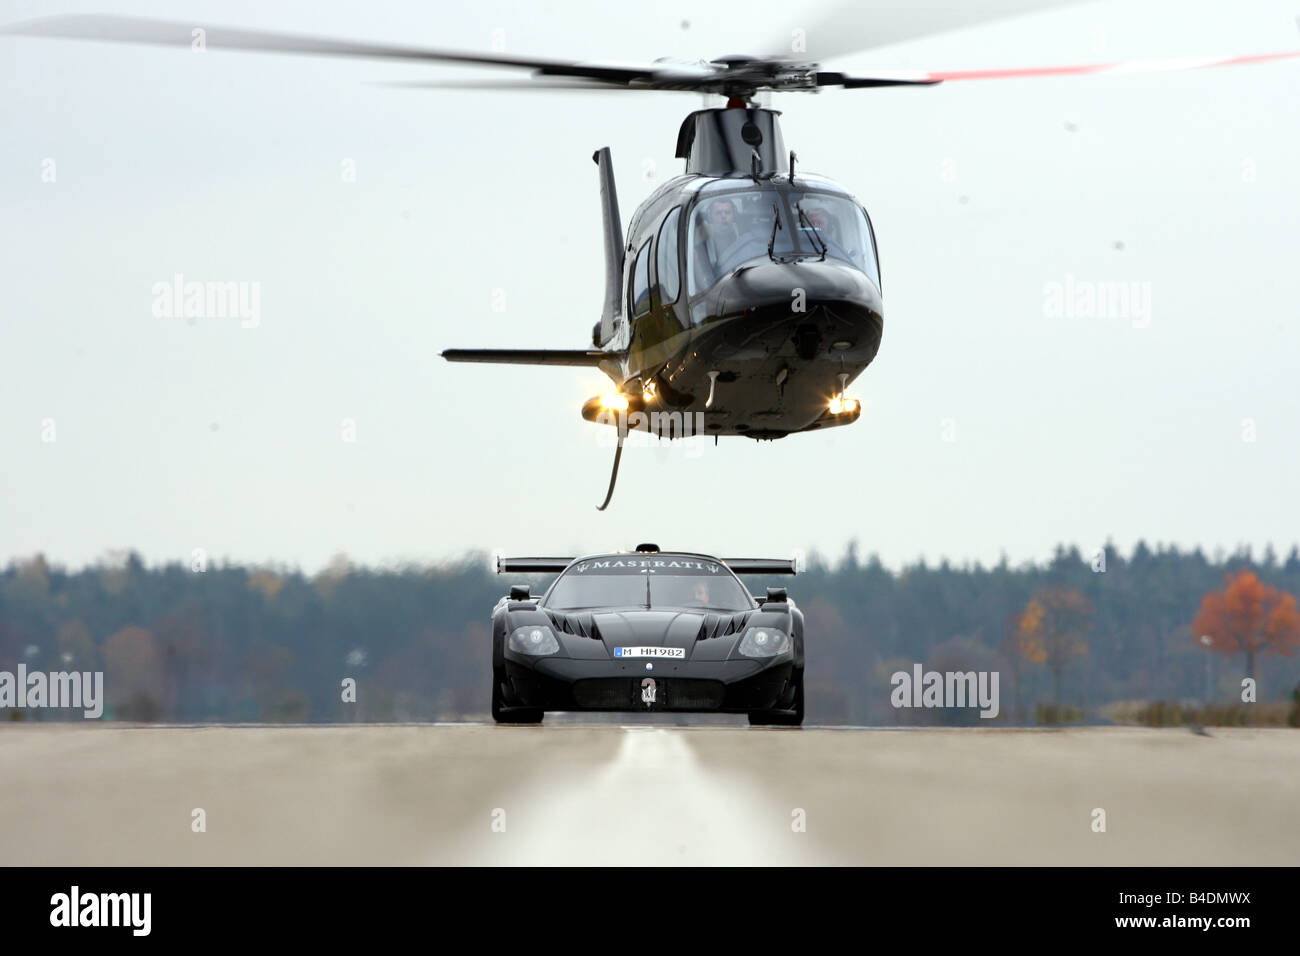 Maserati MC 12 Corsa, model year 2007-, black, driving, frontal view, Airport, Helicopter - Stock Image